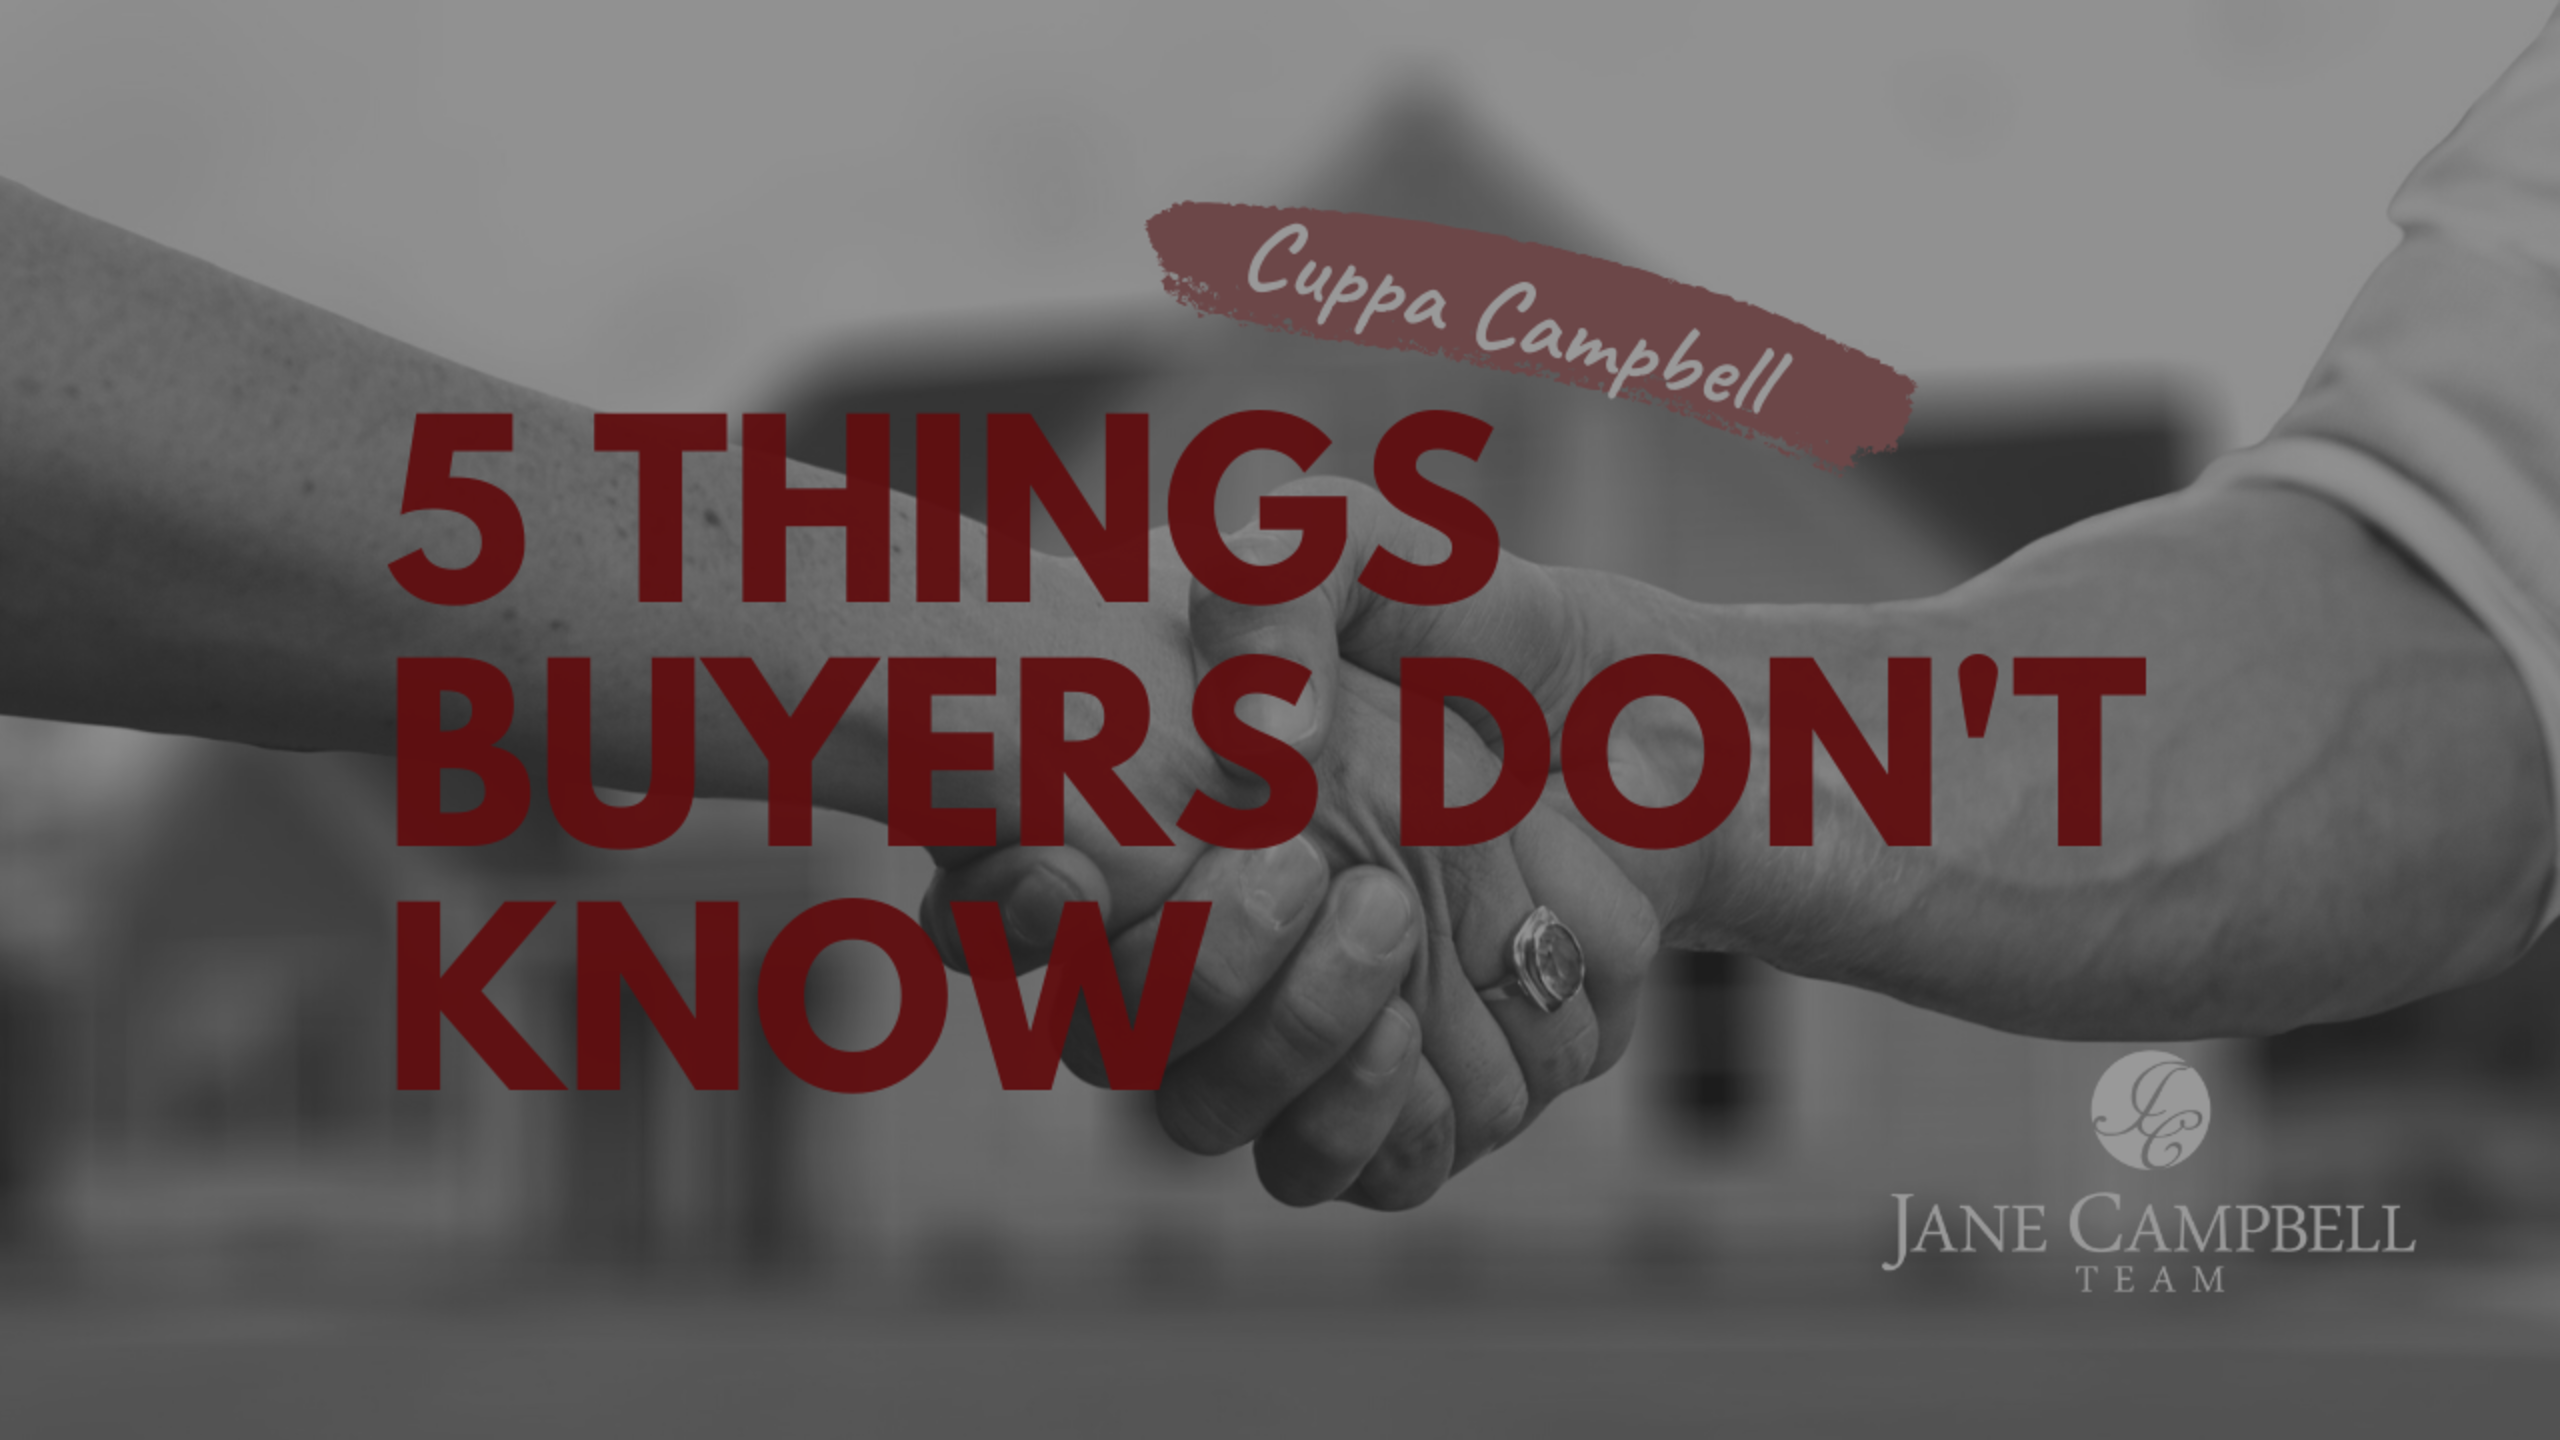 5 Things Buyers Don't Know